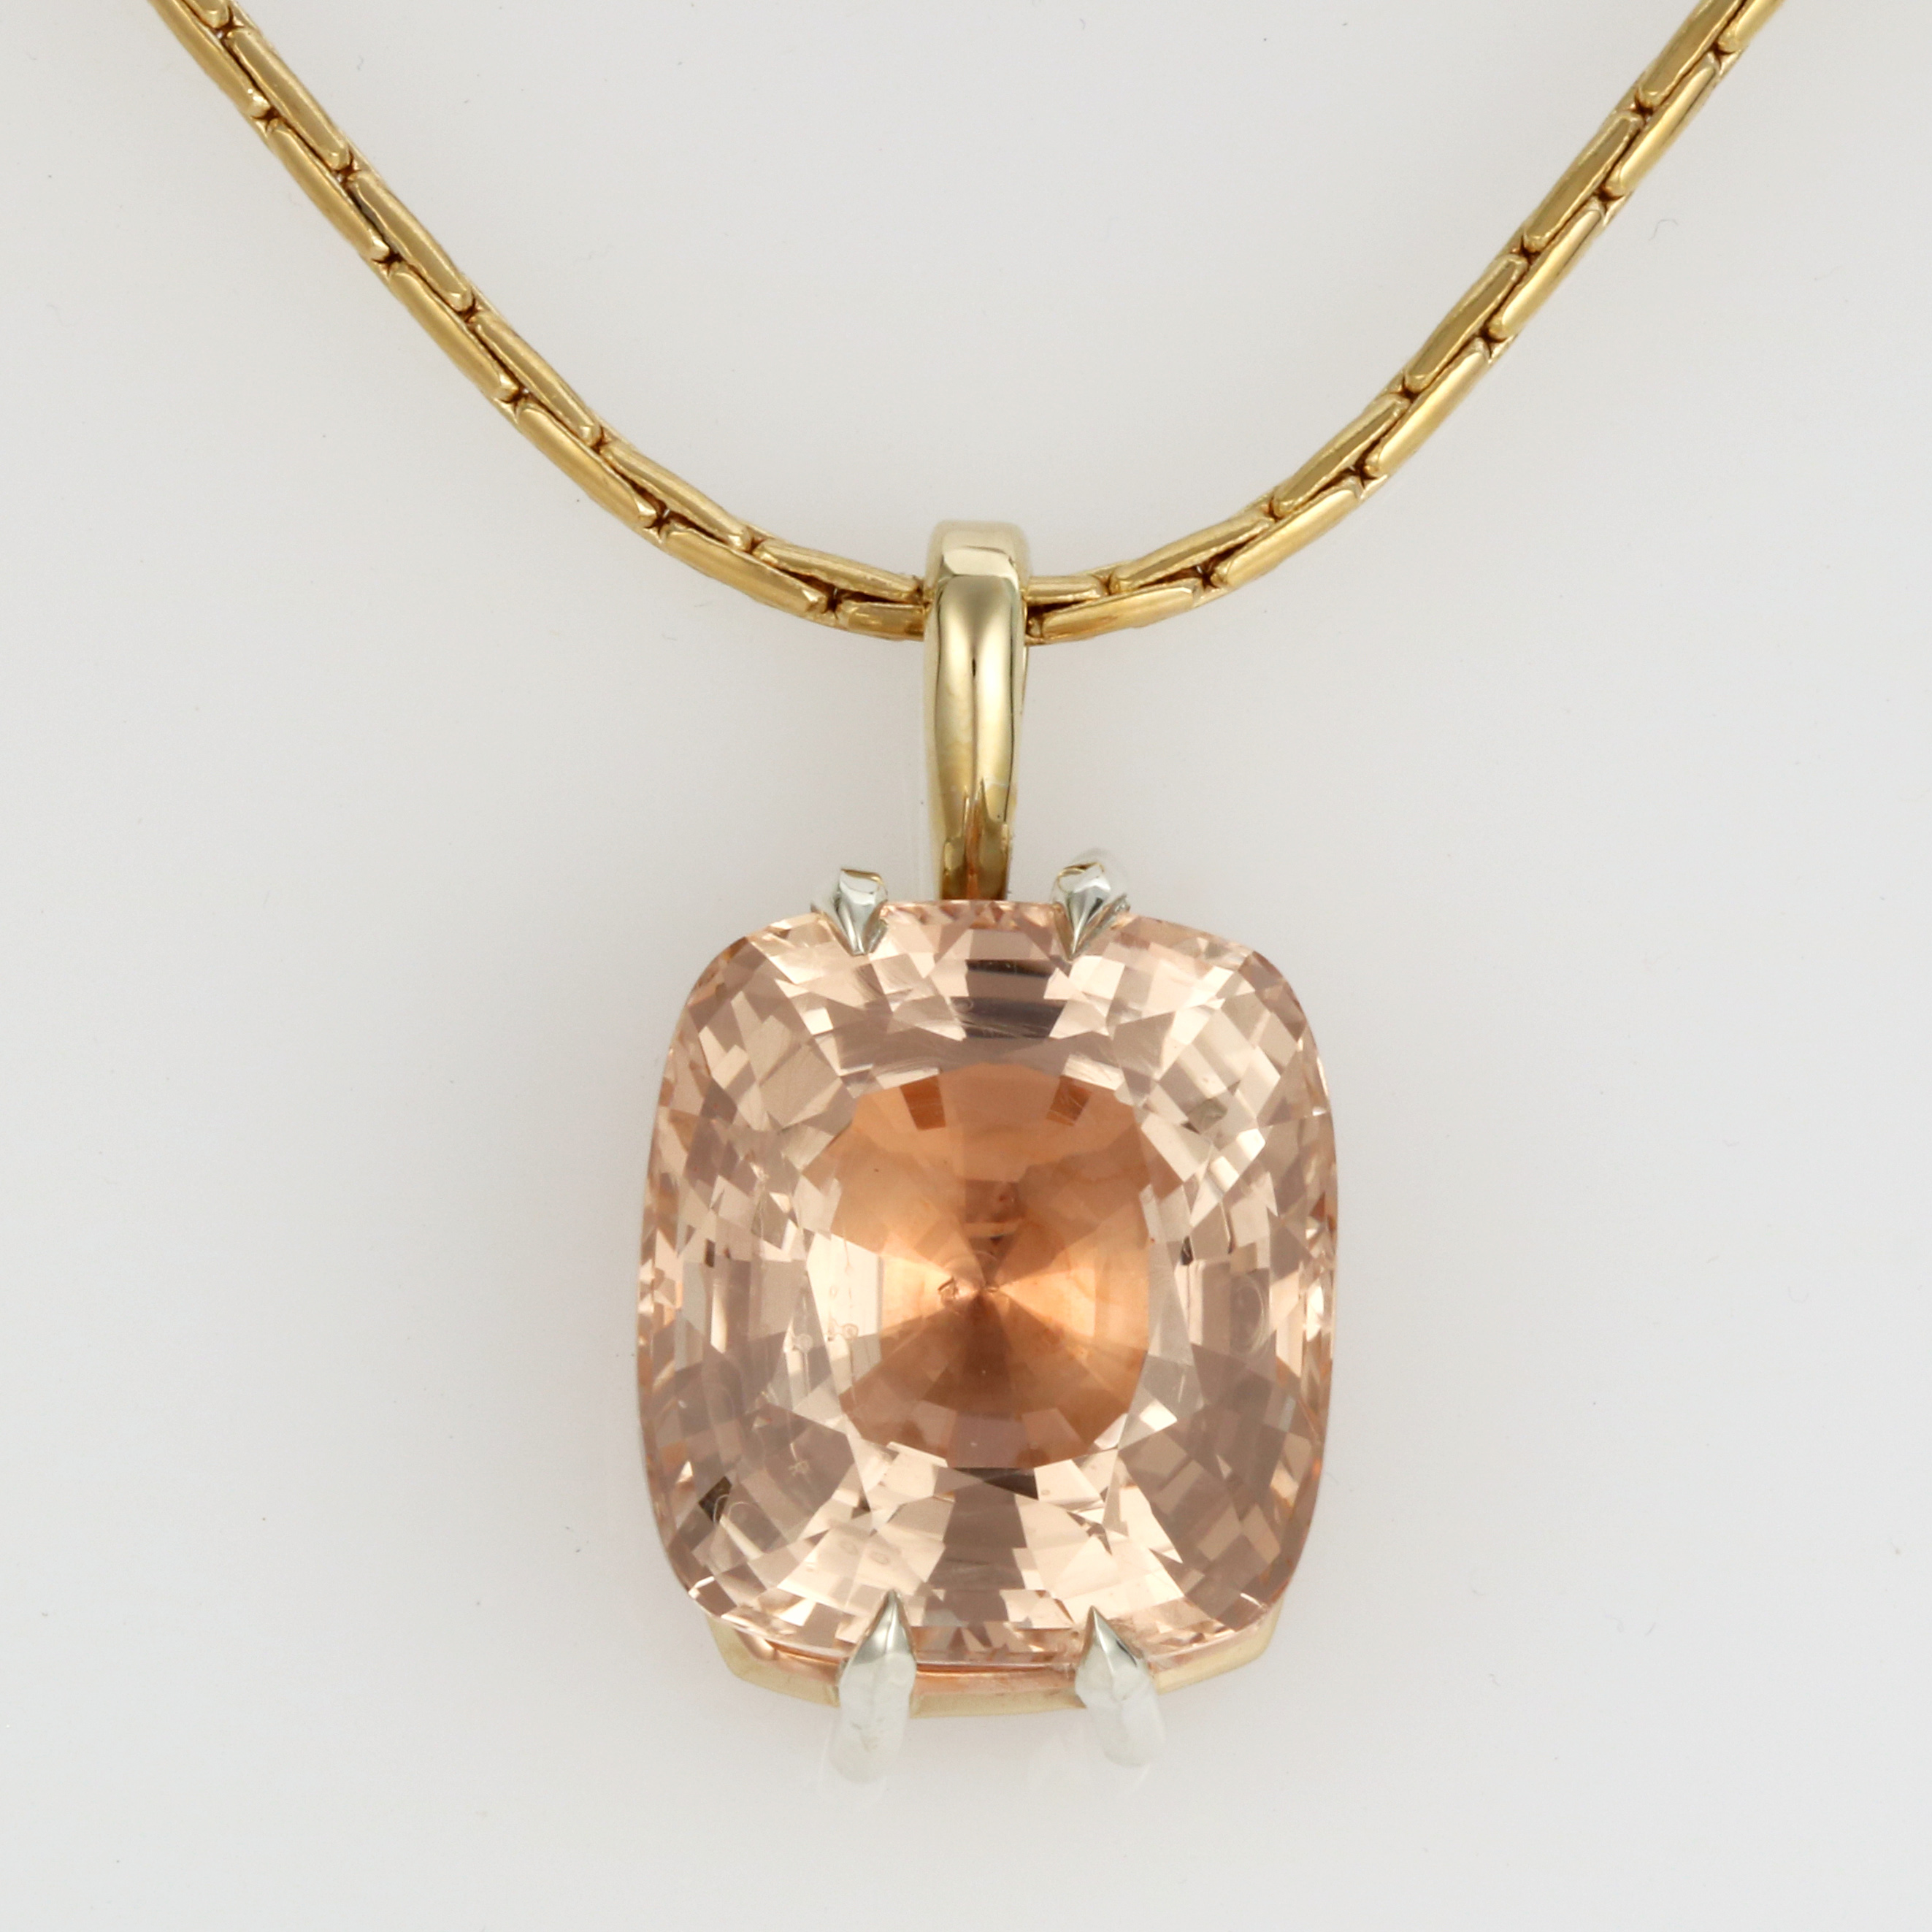 Ladies handmade 9ct Yellow, White and Rose Gold, Pink Topaz Pendant